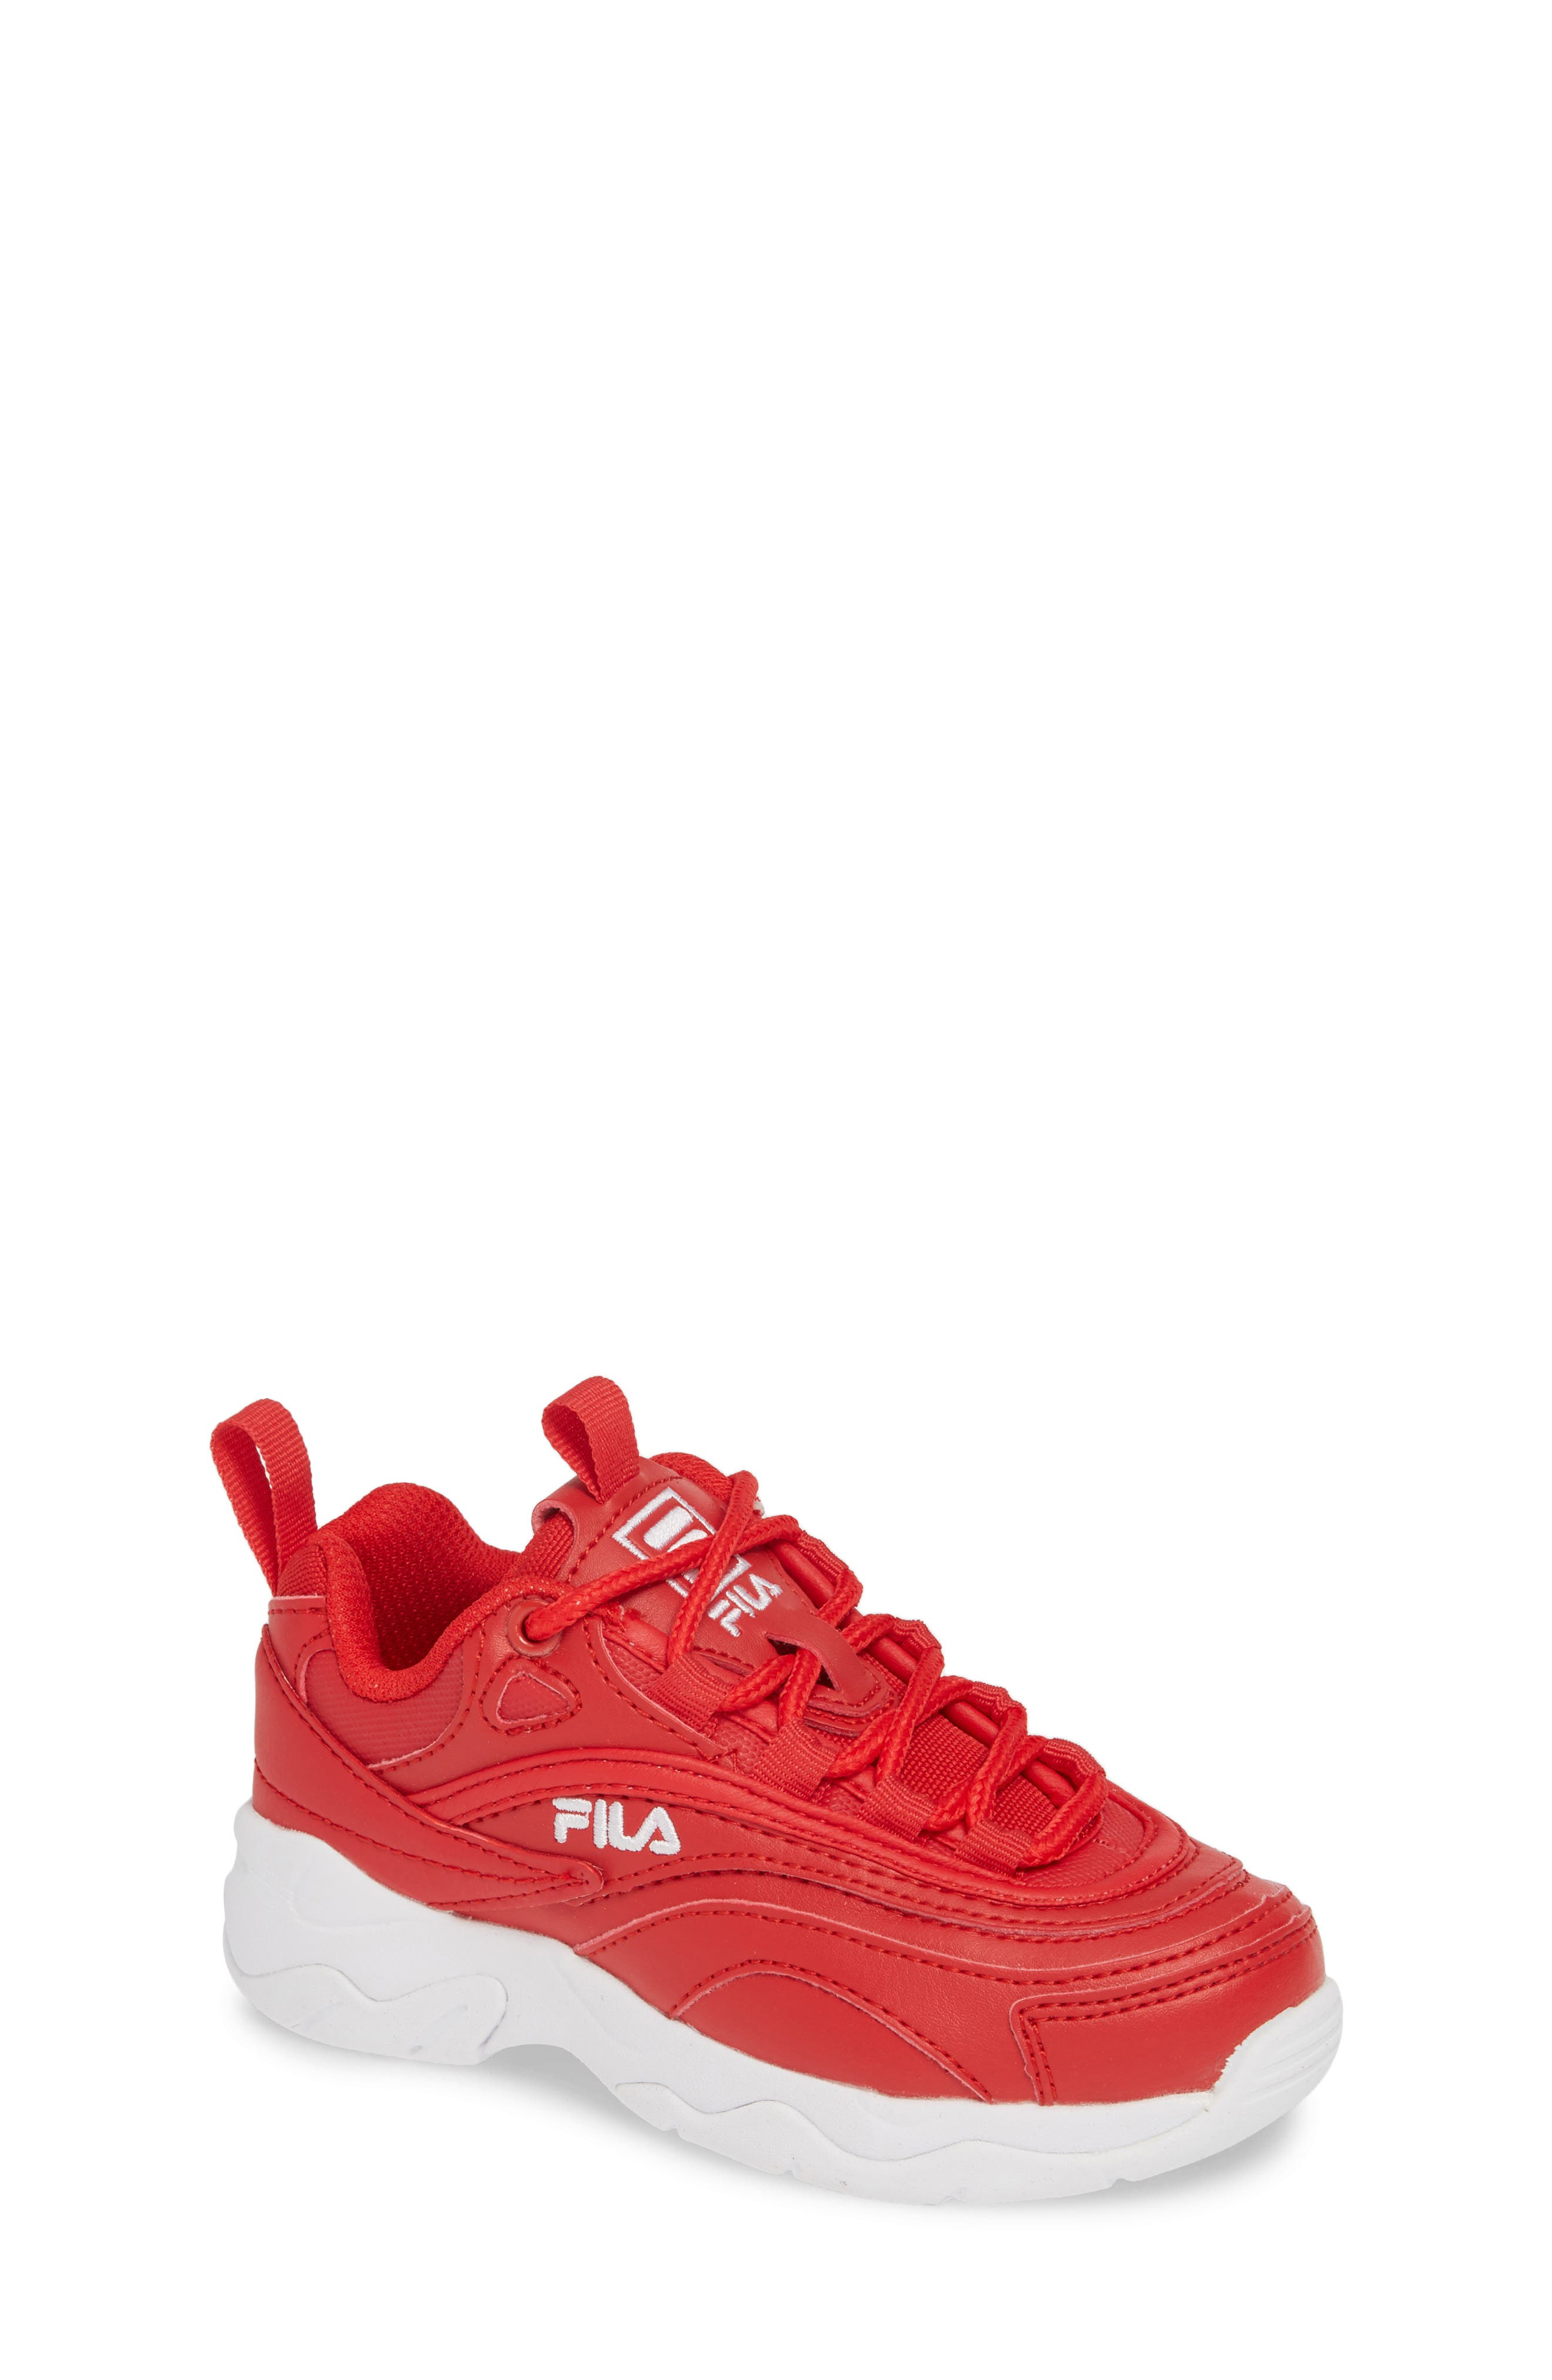 Toddler Fila Ray Sneaker Size 105 M  Red